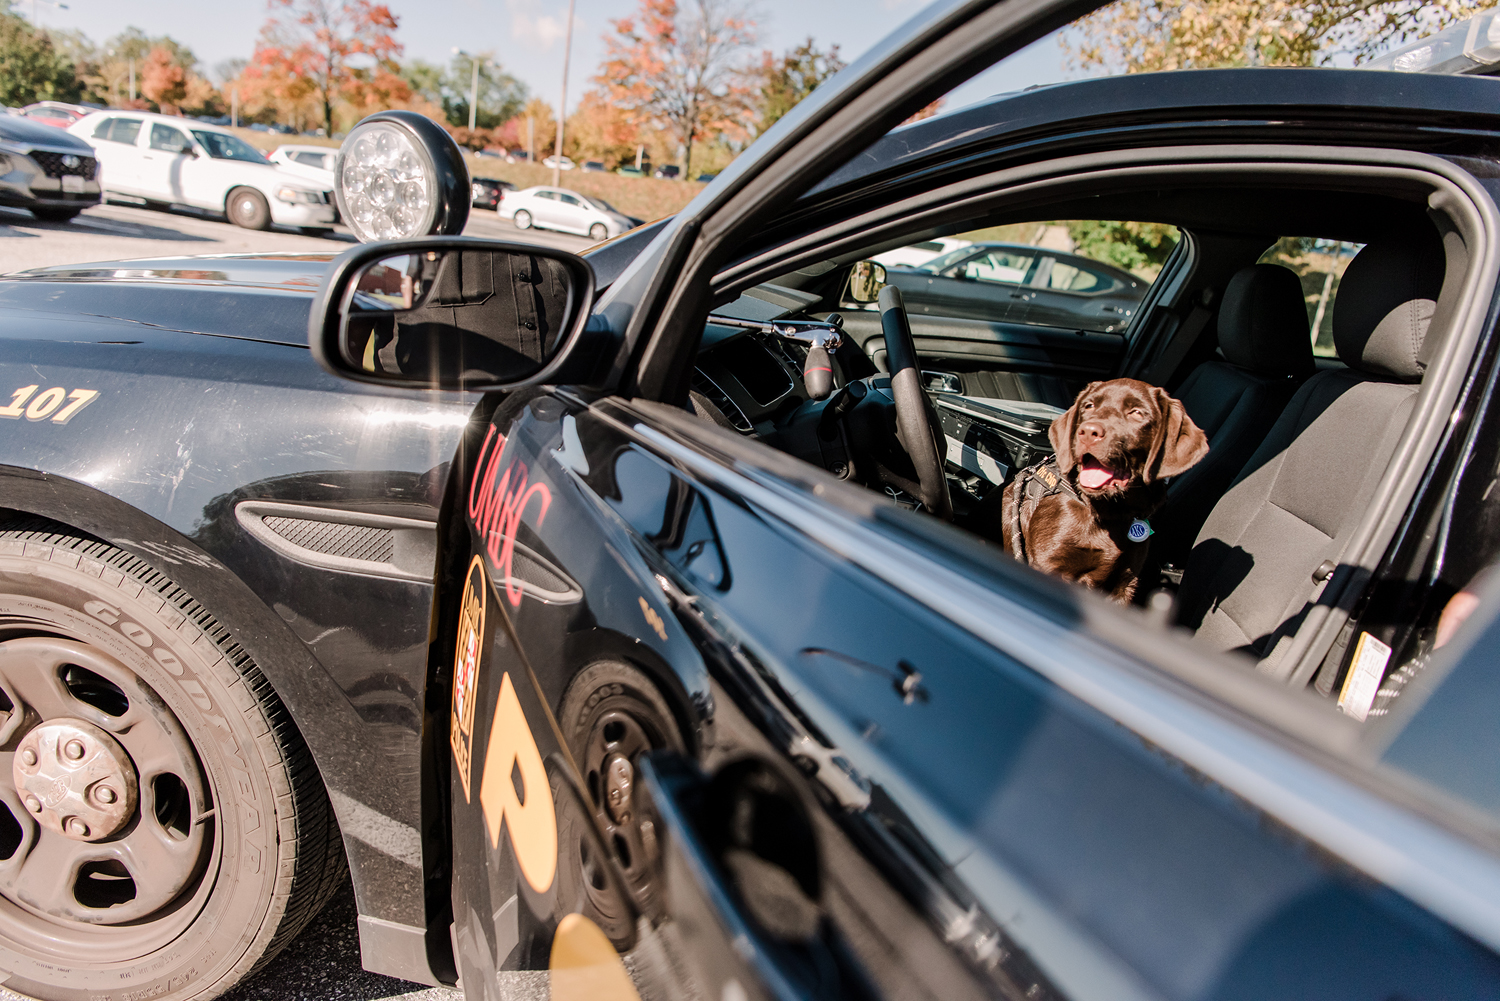 UMBC Police comfort dog Chip sits in the driver's seat of a UMCBC Police car